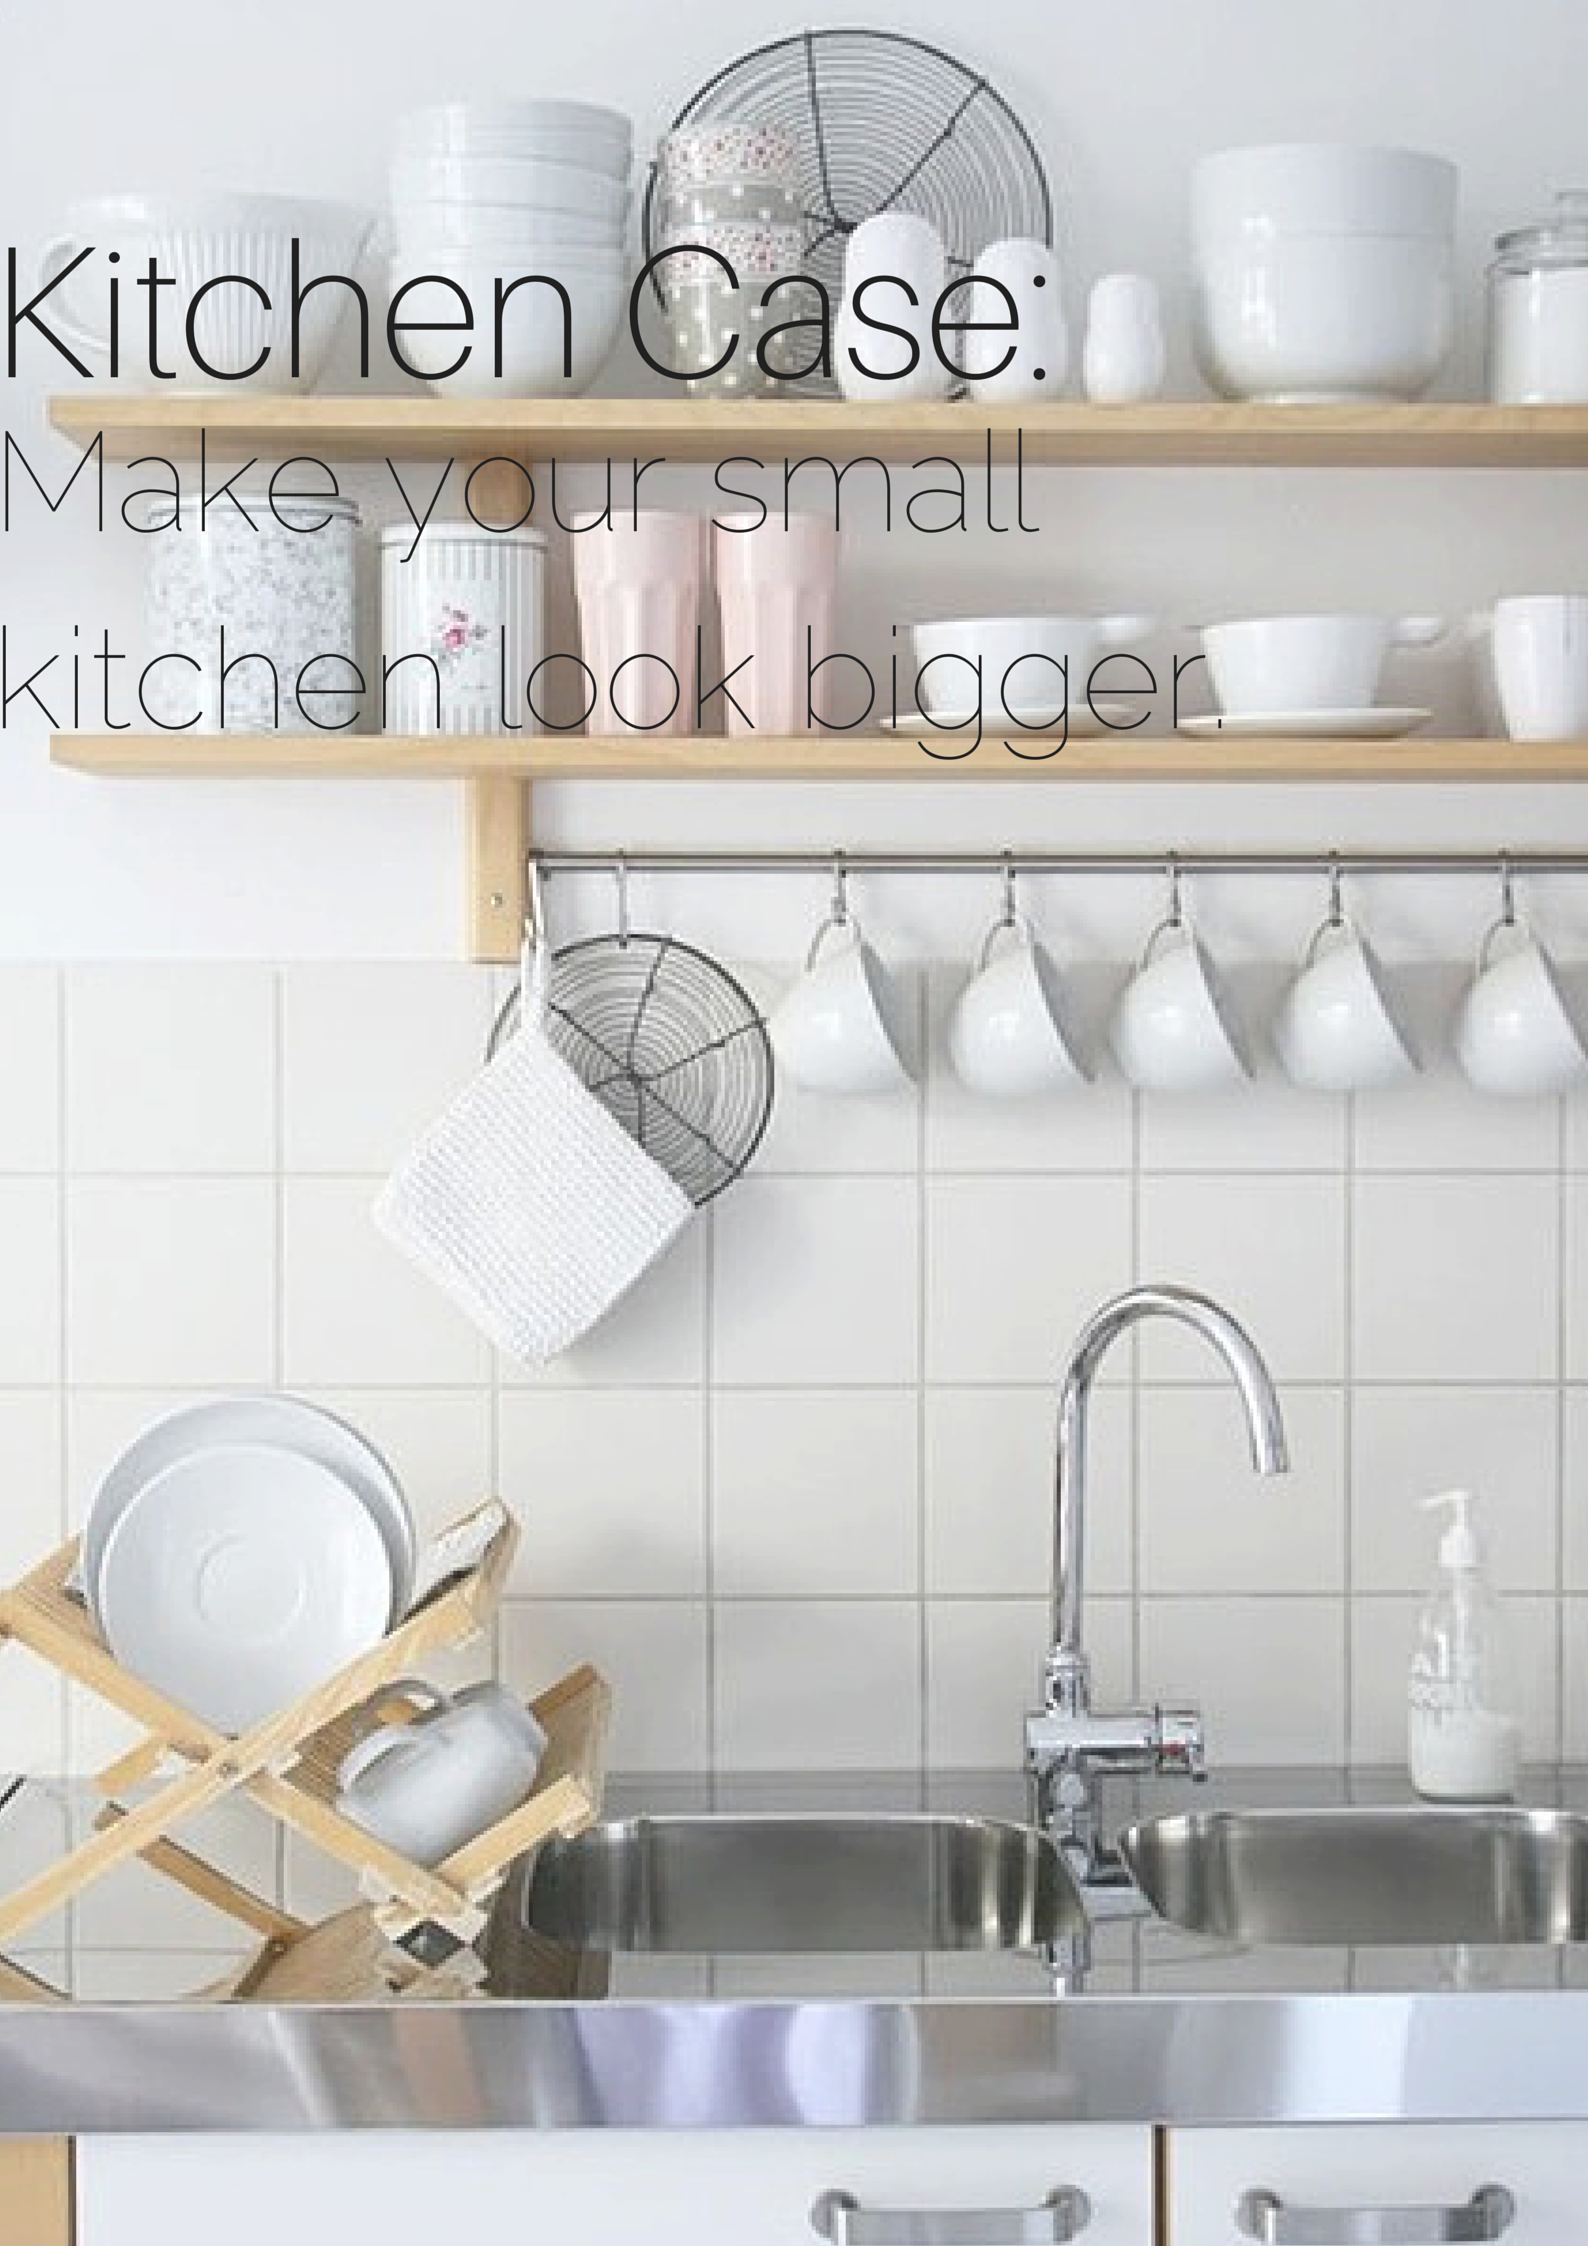 Kitchen Case How To Make Your Small Kitchen Look Bigger